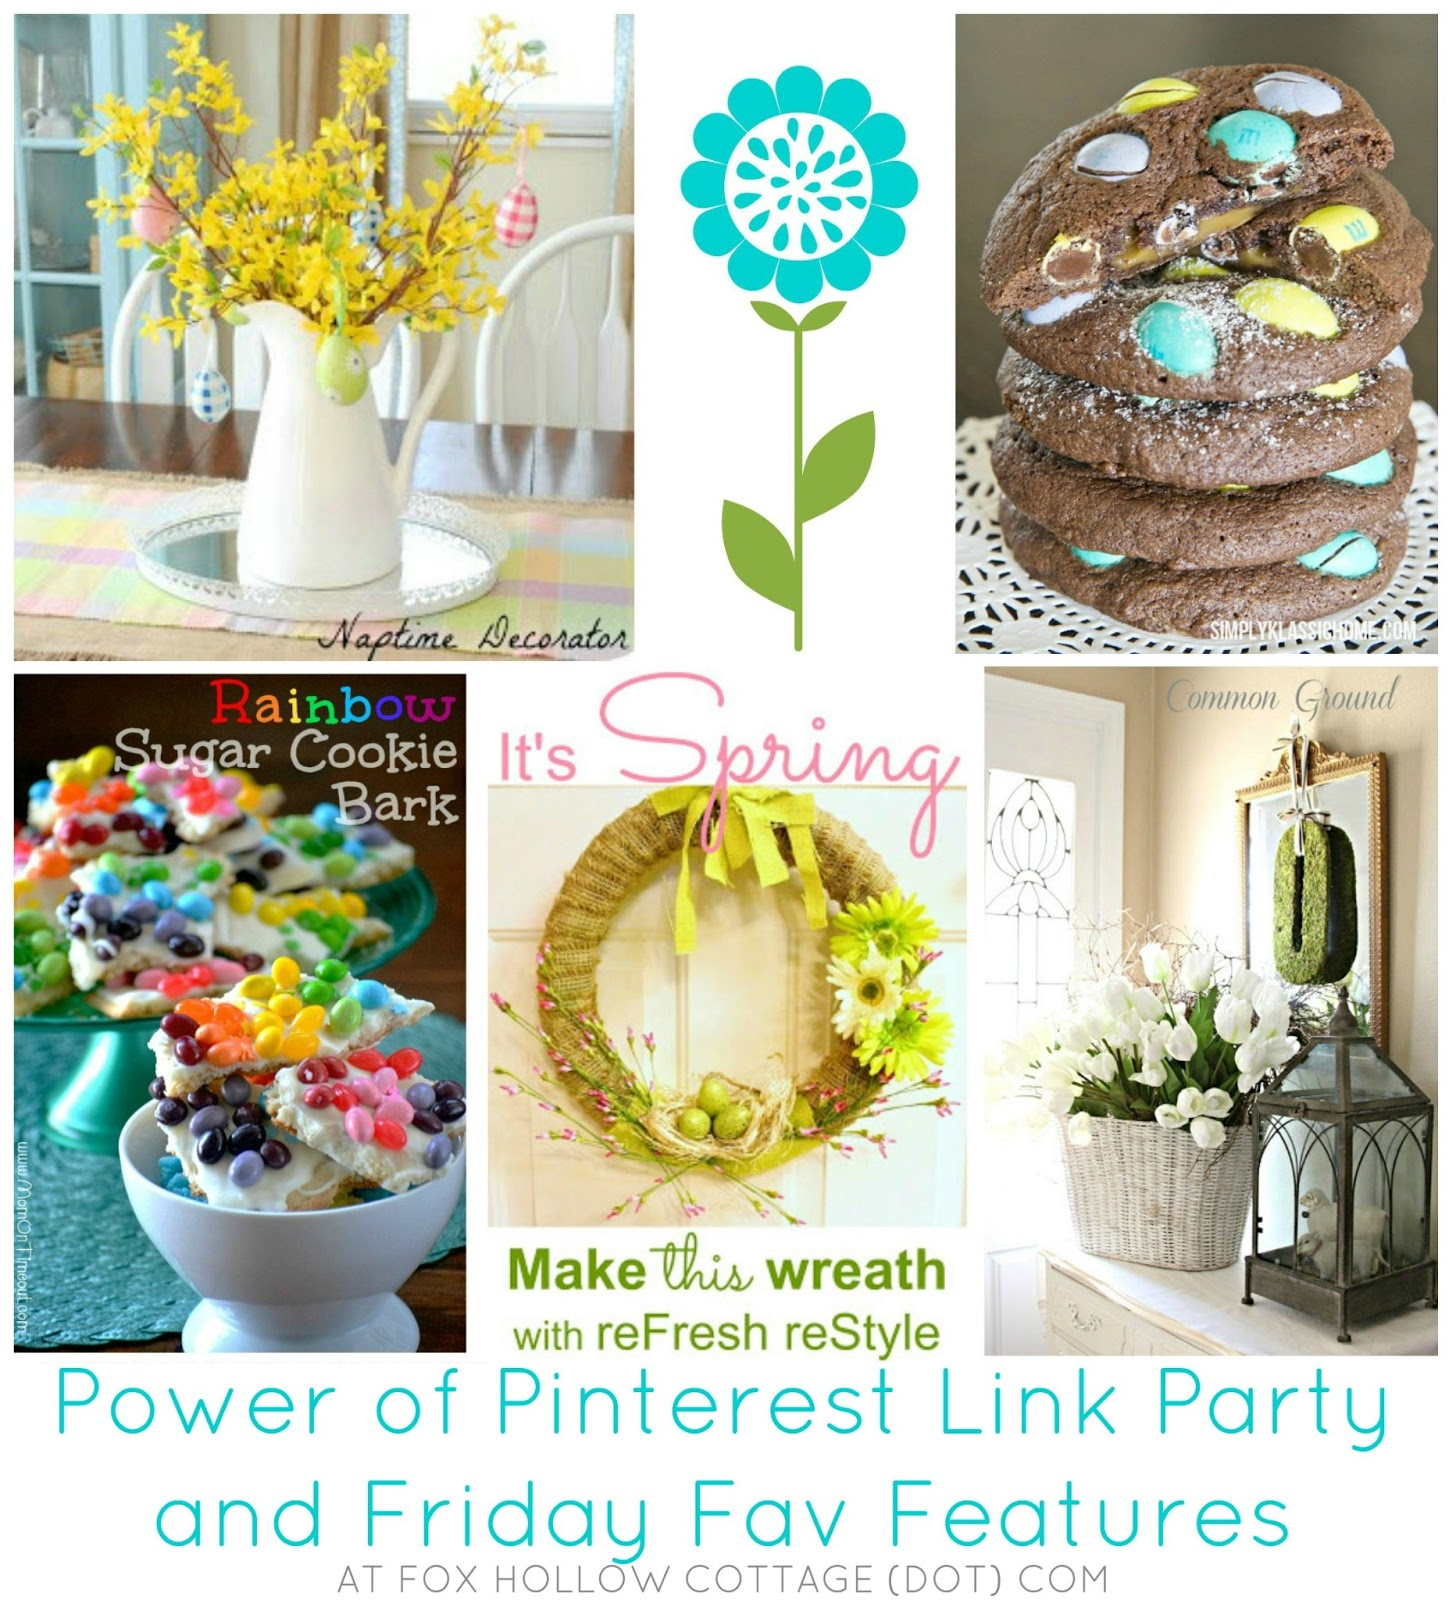 Diy home crafts pinterest power of pinterest link party Diy home decor crafts pinterest